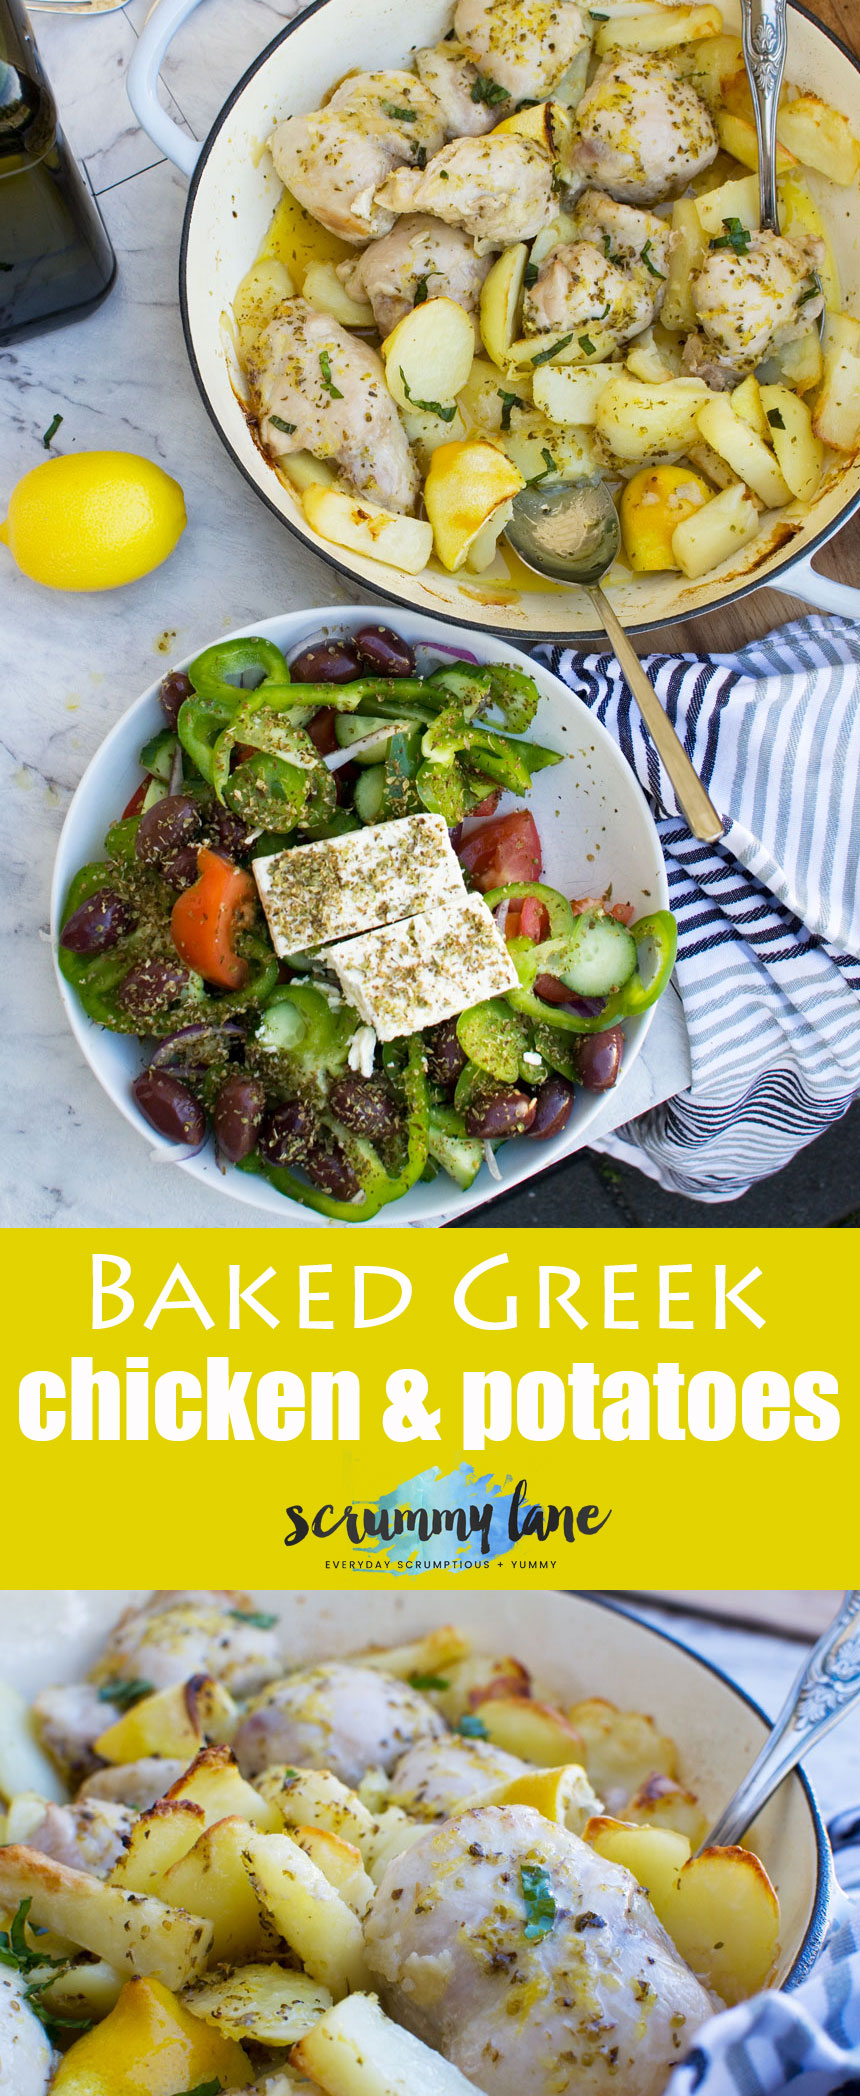 Serve this simple baked Greek chicken & potatoes with a huge traditional Greek salad (see my blog for recipe!) and you'll be in Greek food heaven! #chicken #Greekfood #Greece #Greeksalad #scrummylane #potatoes #onepotmeals